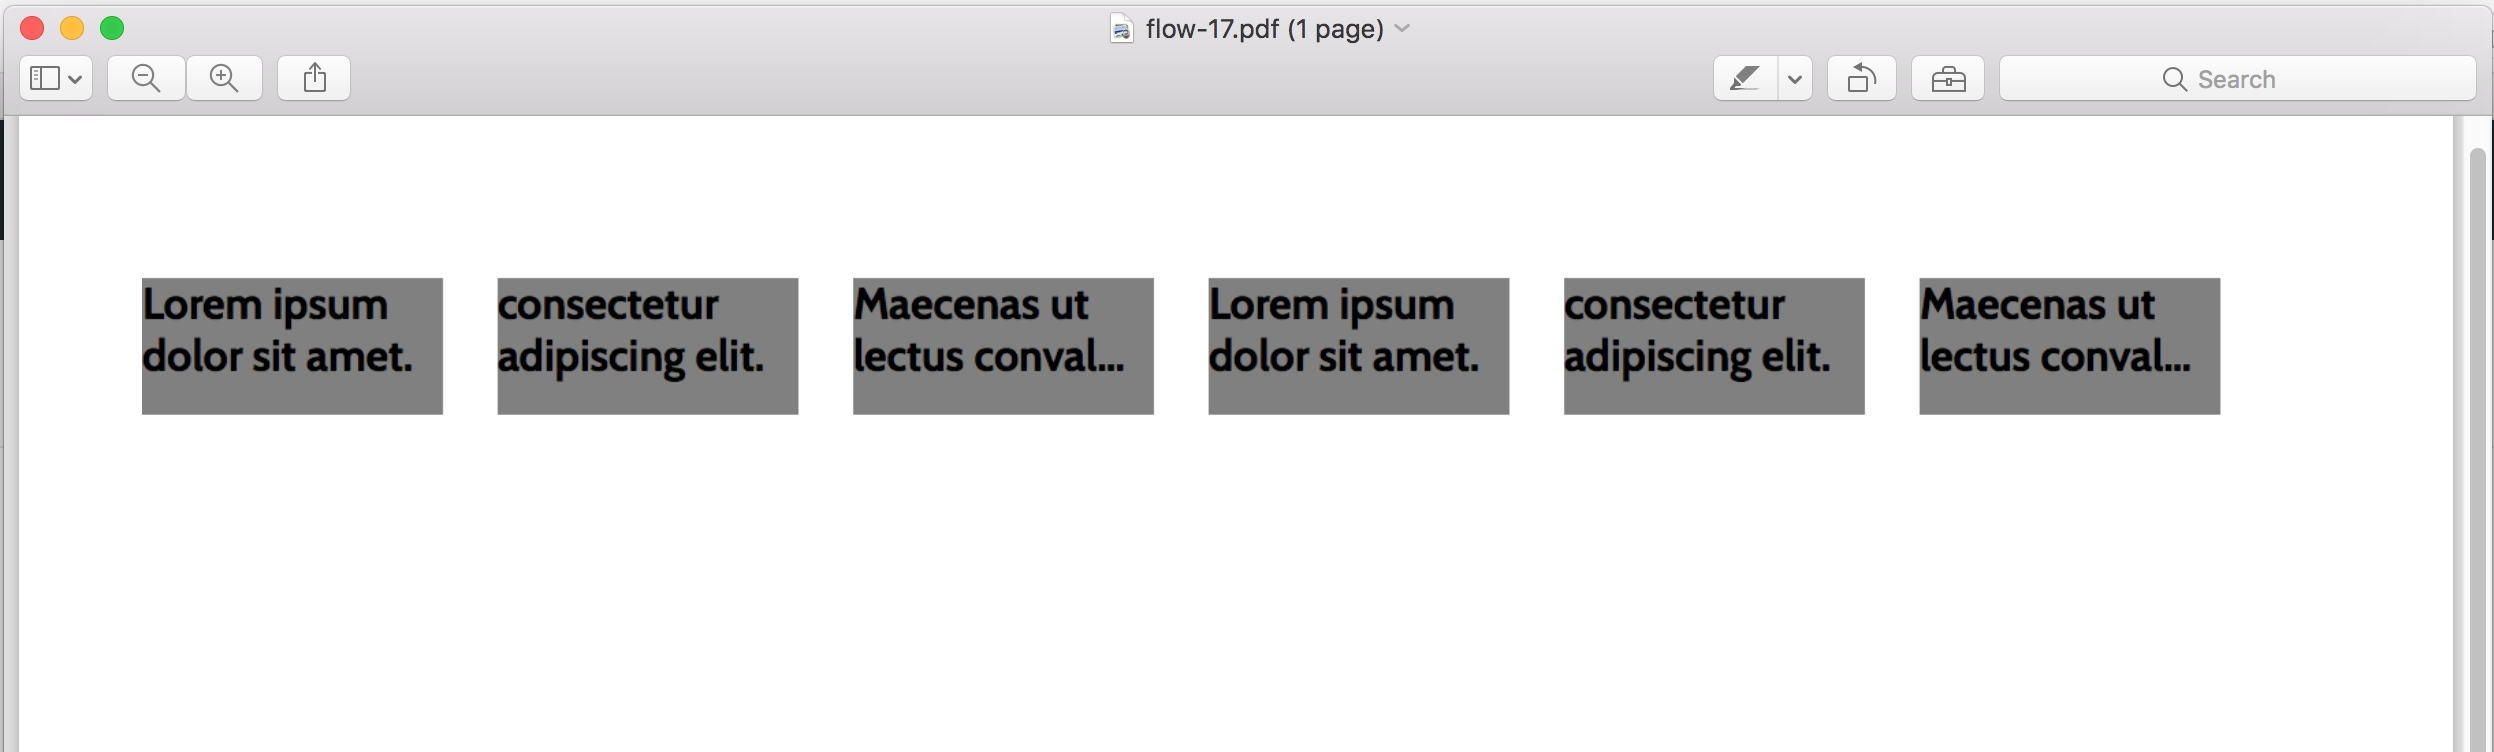 Generate PDF from SVG with embedded custom @Fontface don't